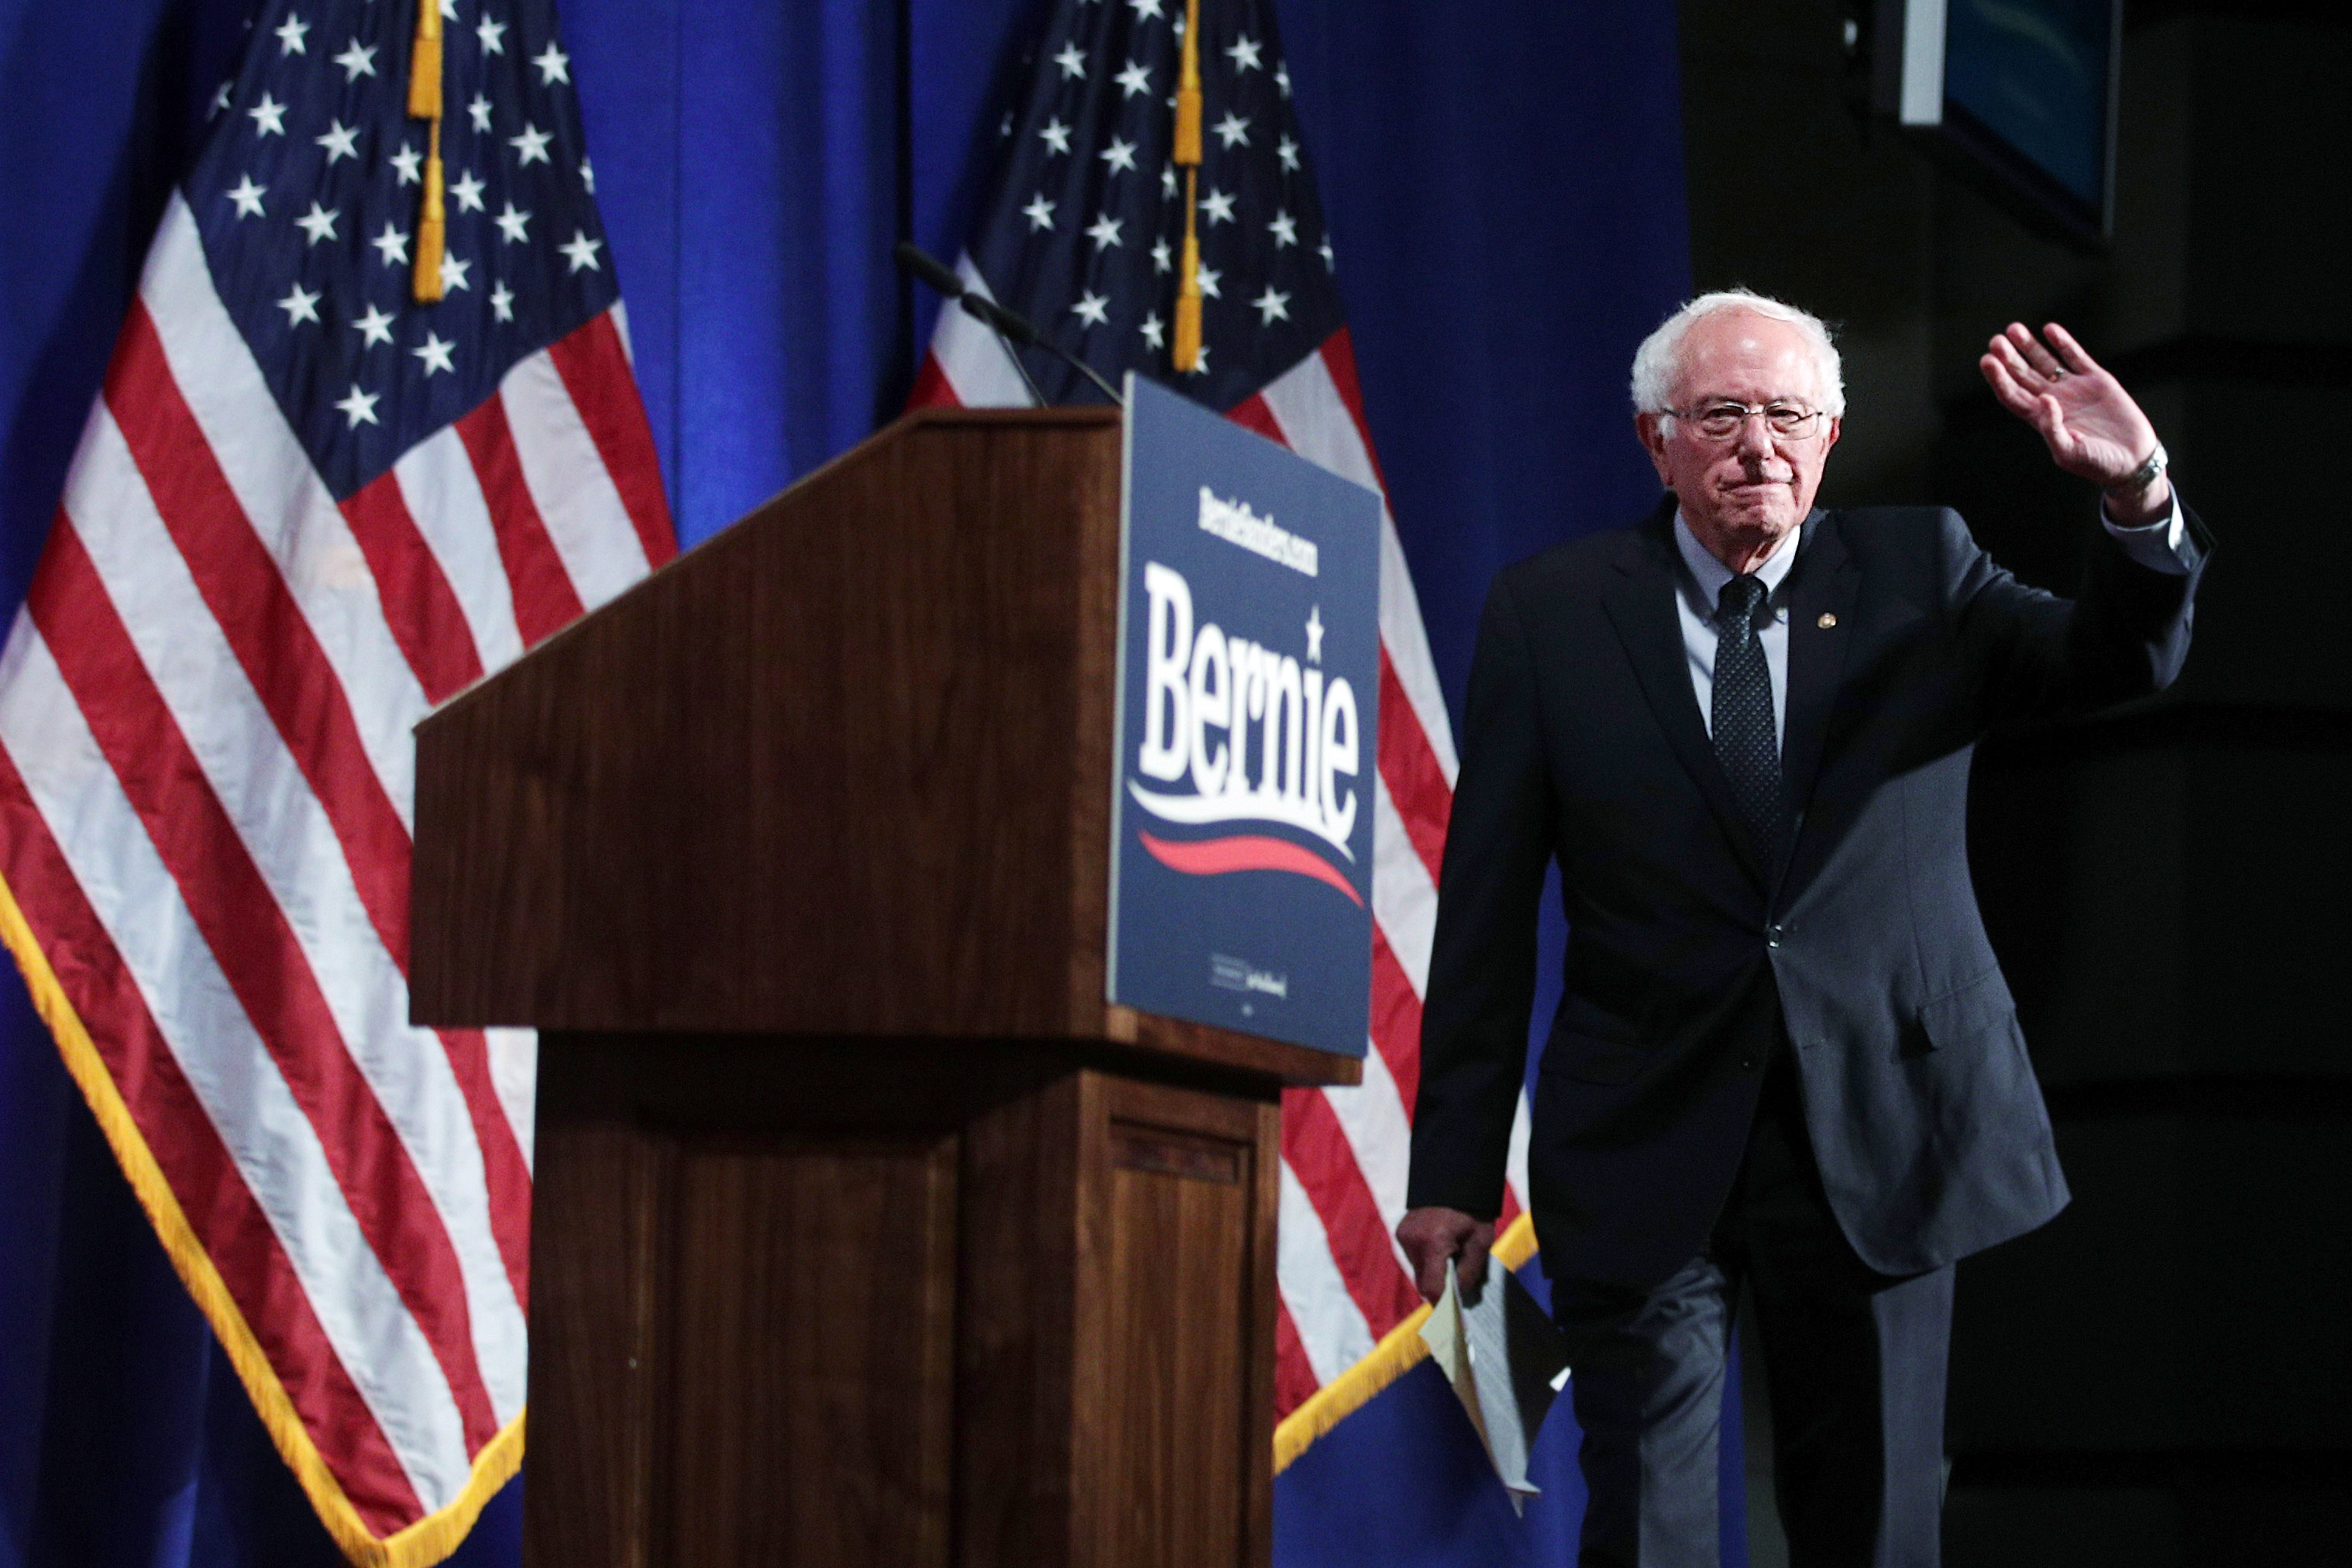 Democratic presidential hopeful and U.S. Sen. Bernie Sanders (I-VT) arrives for a speech on healthcare at George Washington University July 17, 2019 in Washington, DC.